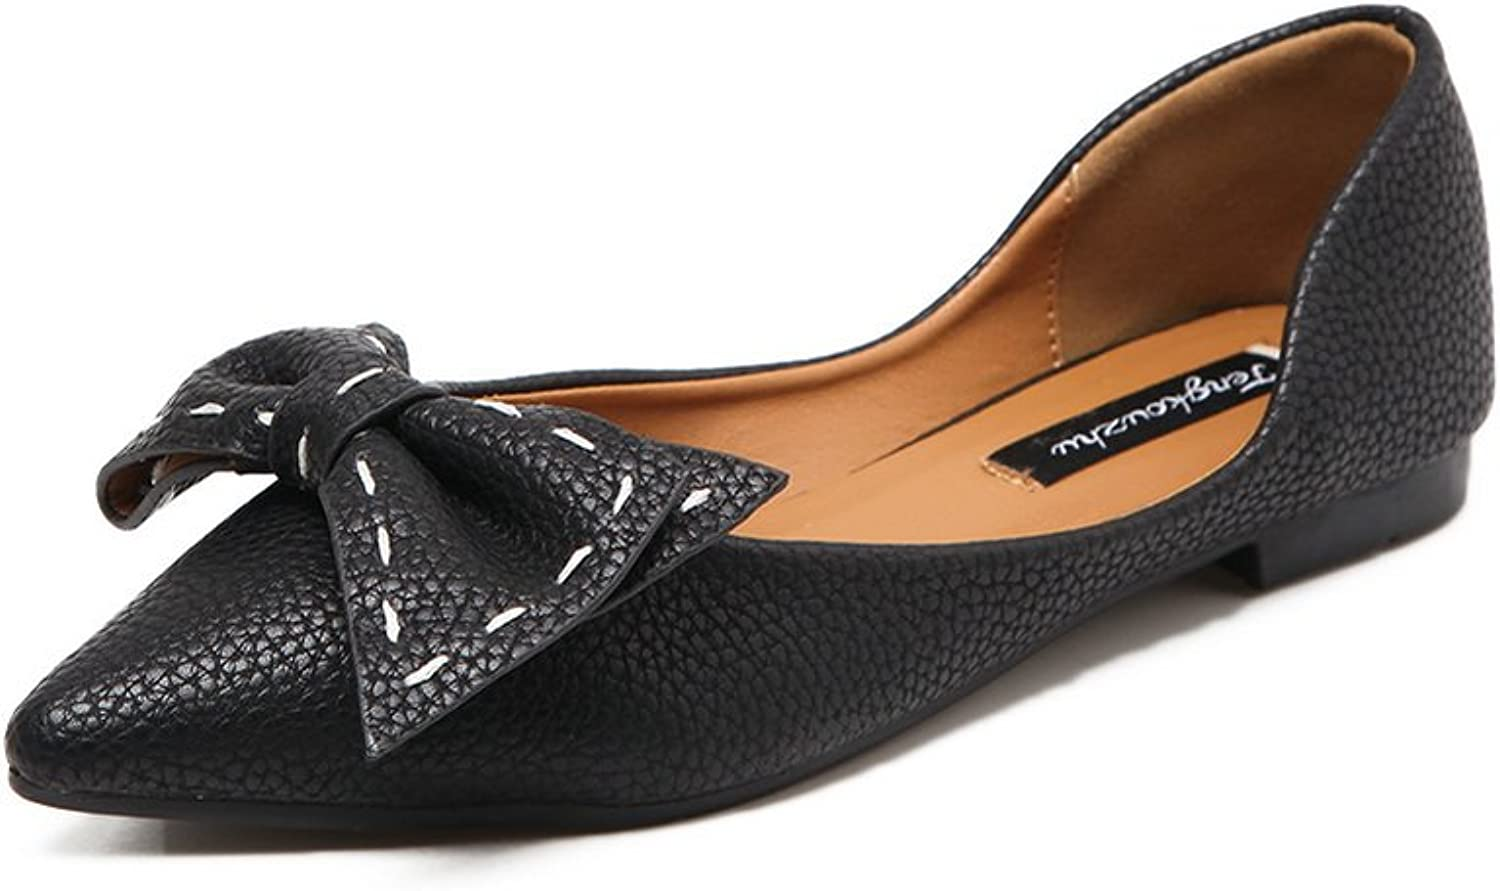 Ladola Womens Bows Low-Cut Uppers Pointed-Toe Urethane Flats shoes